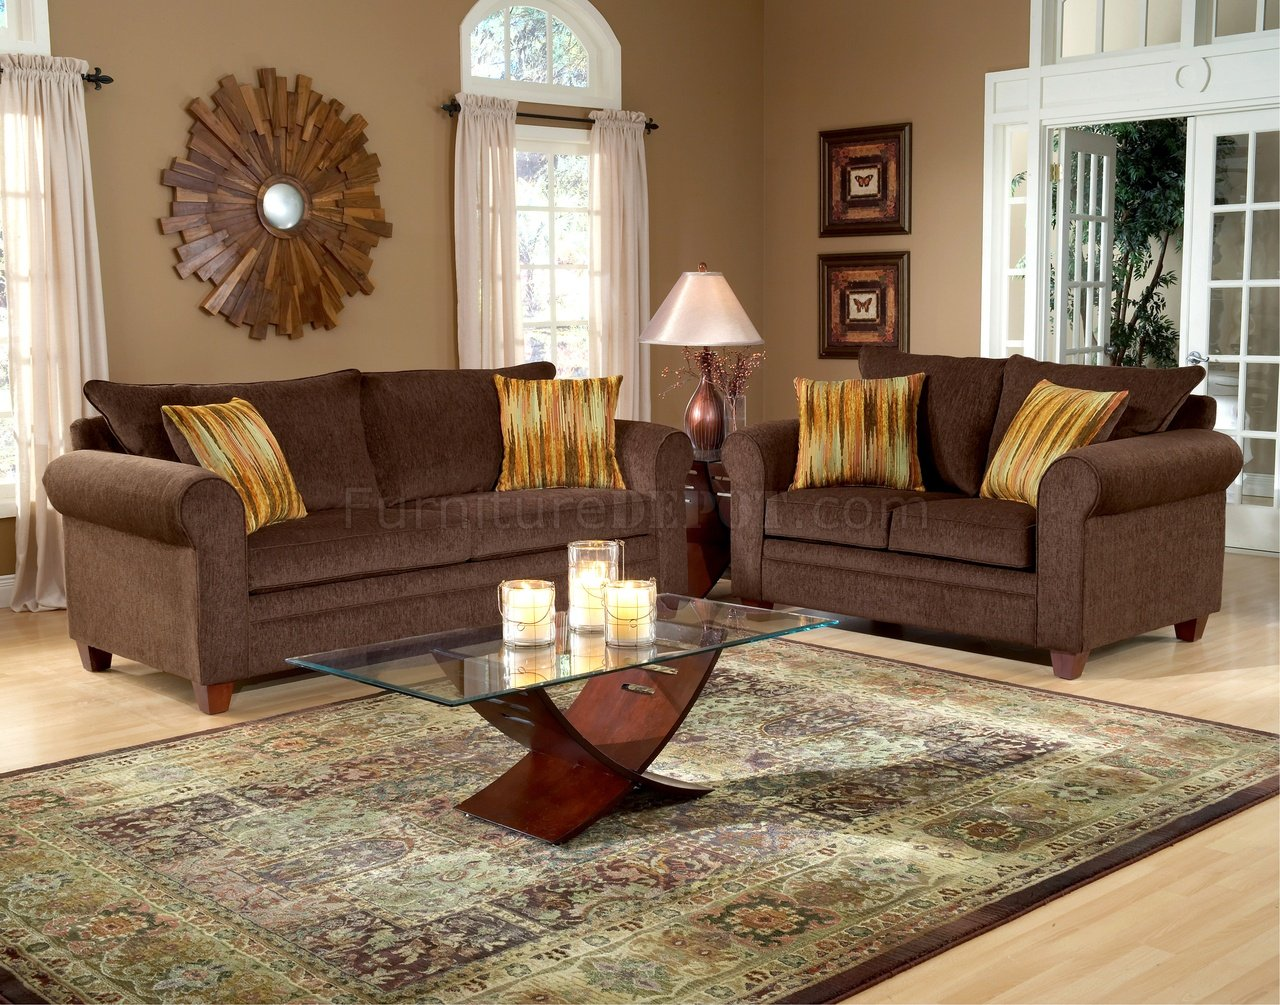 chocolate fabric elegant living room sofa loveseat set. Black Bedroom Furniture Sets. Home Design Ideas